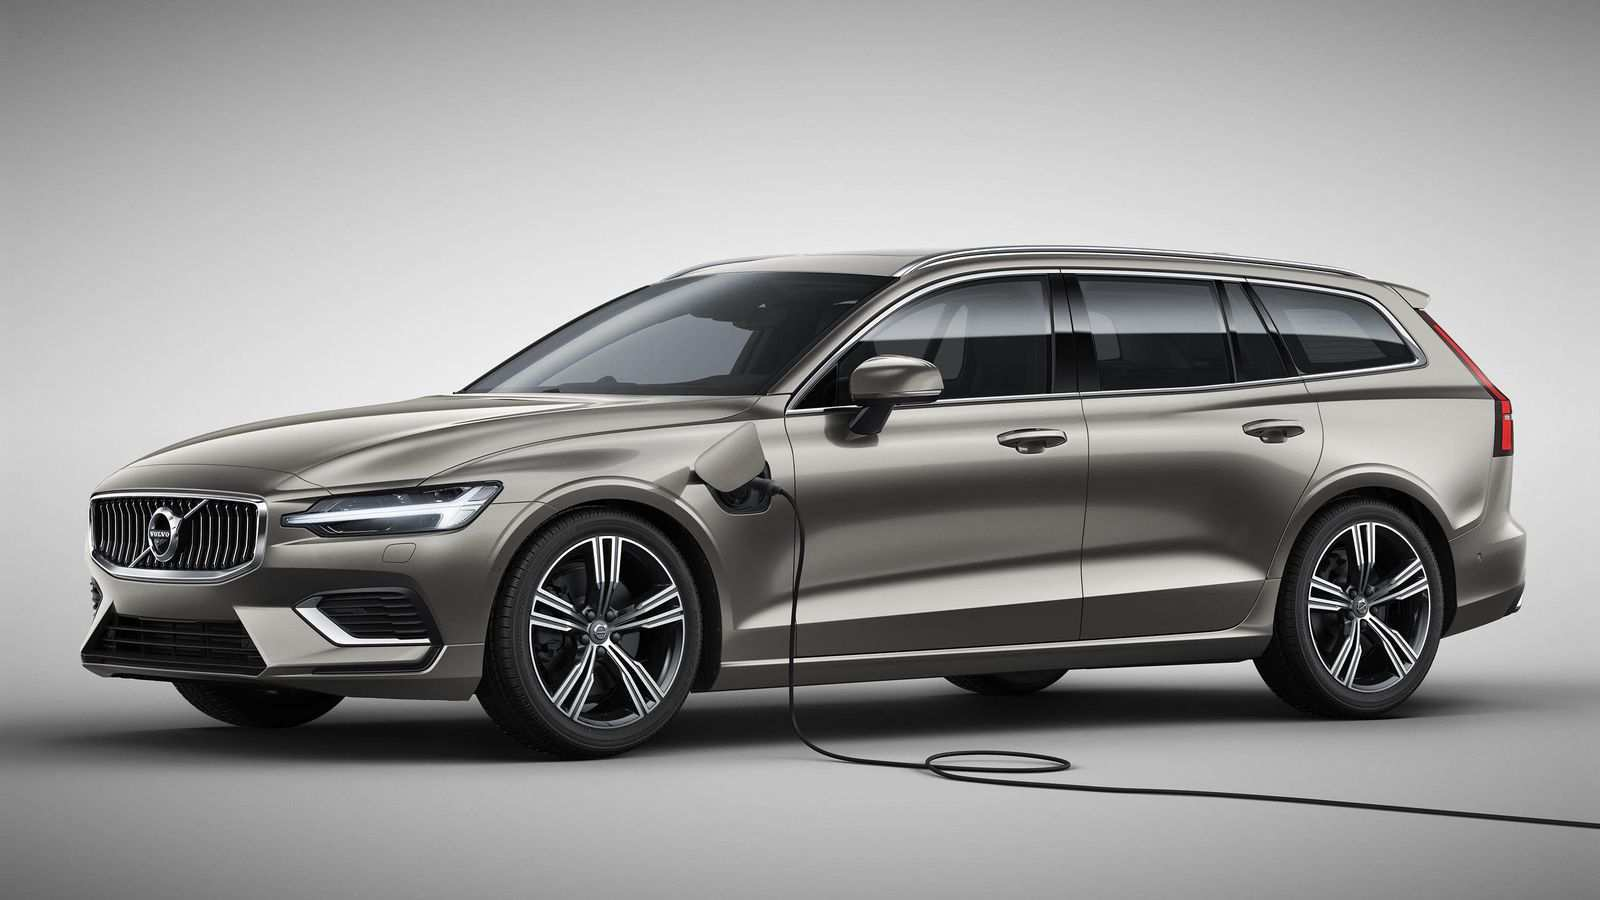 63 All New 2019 Volvo Plug In History for 2019 Volvo Plug In